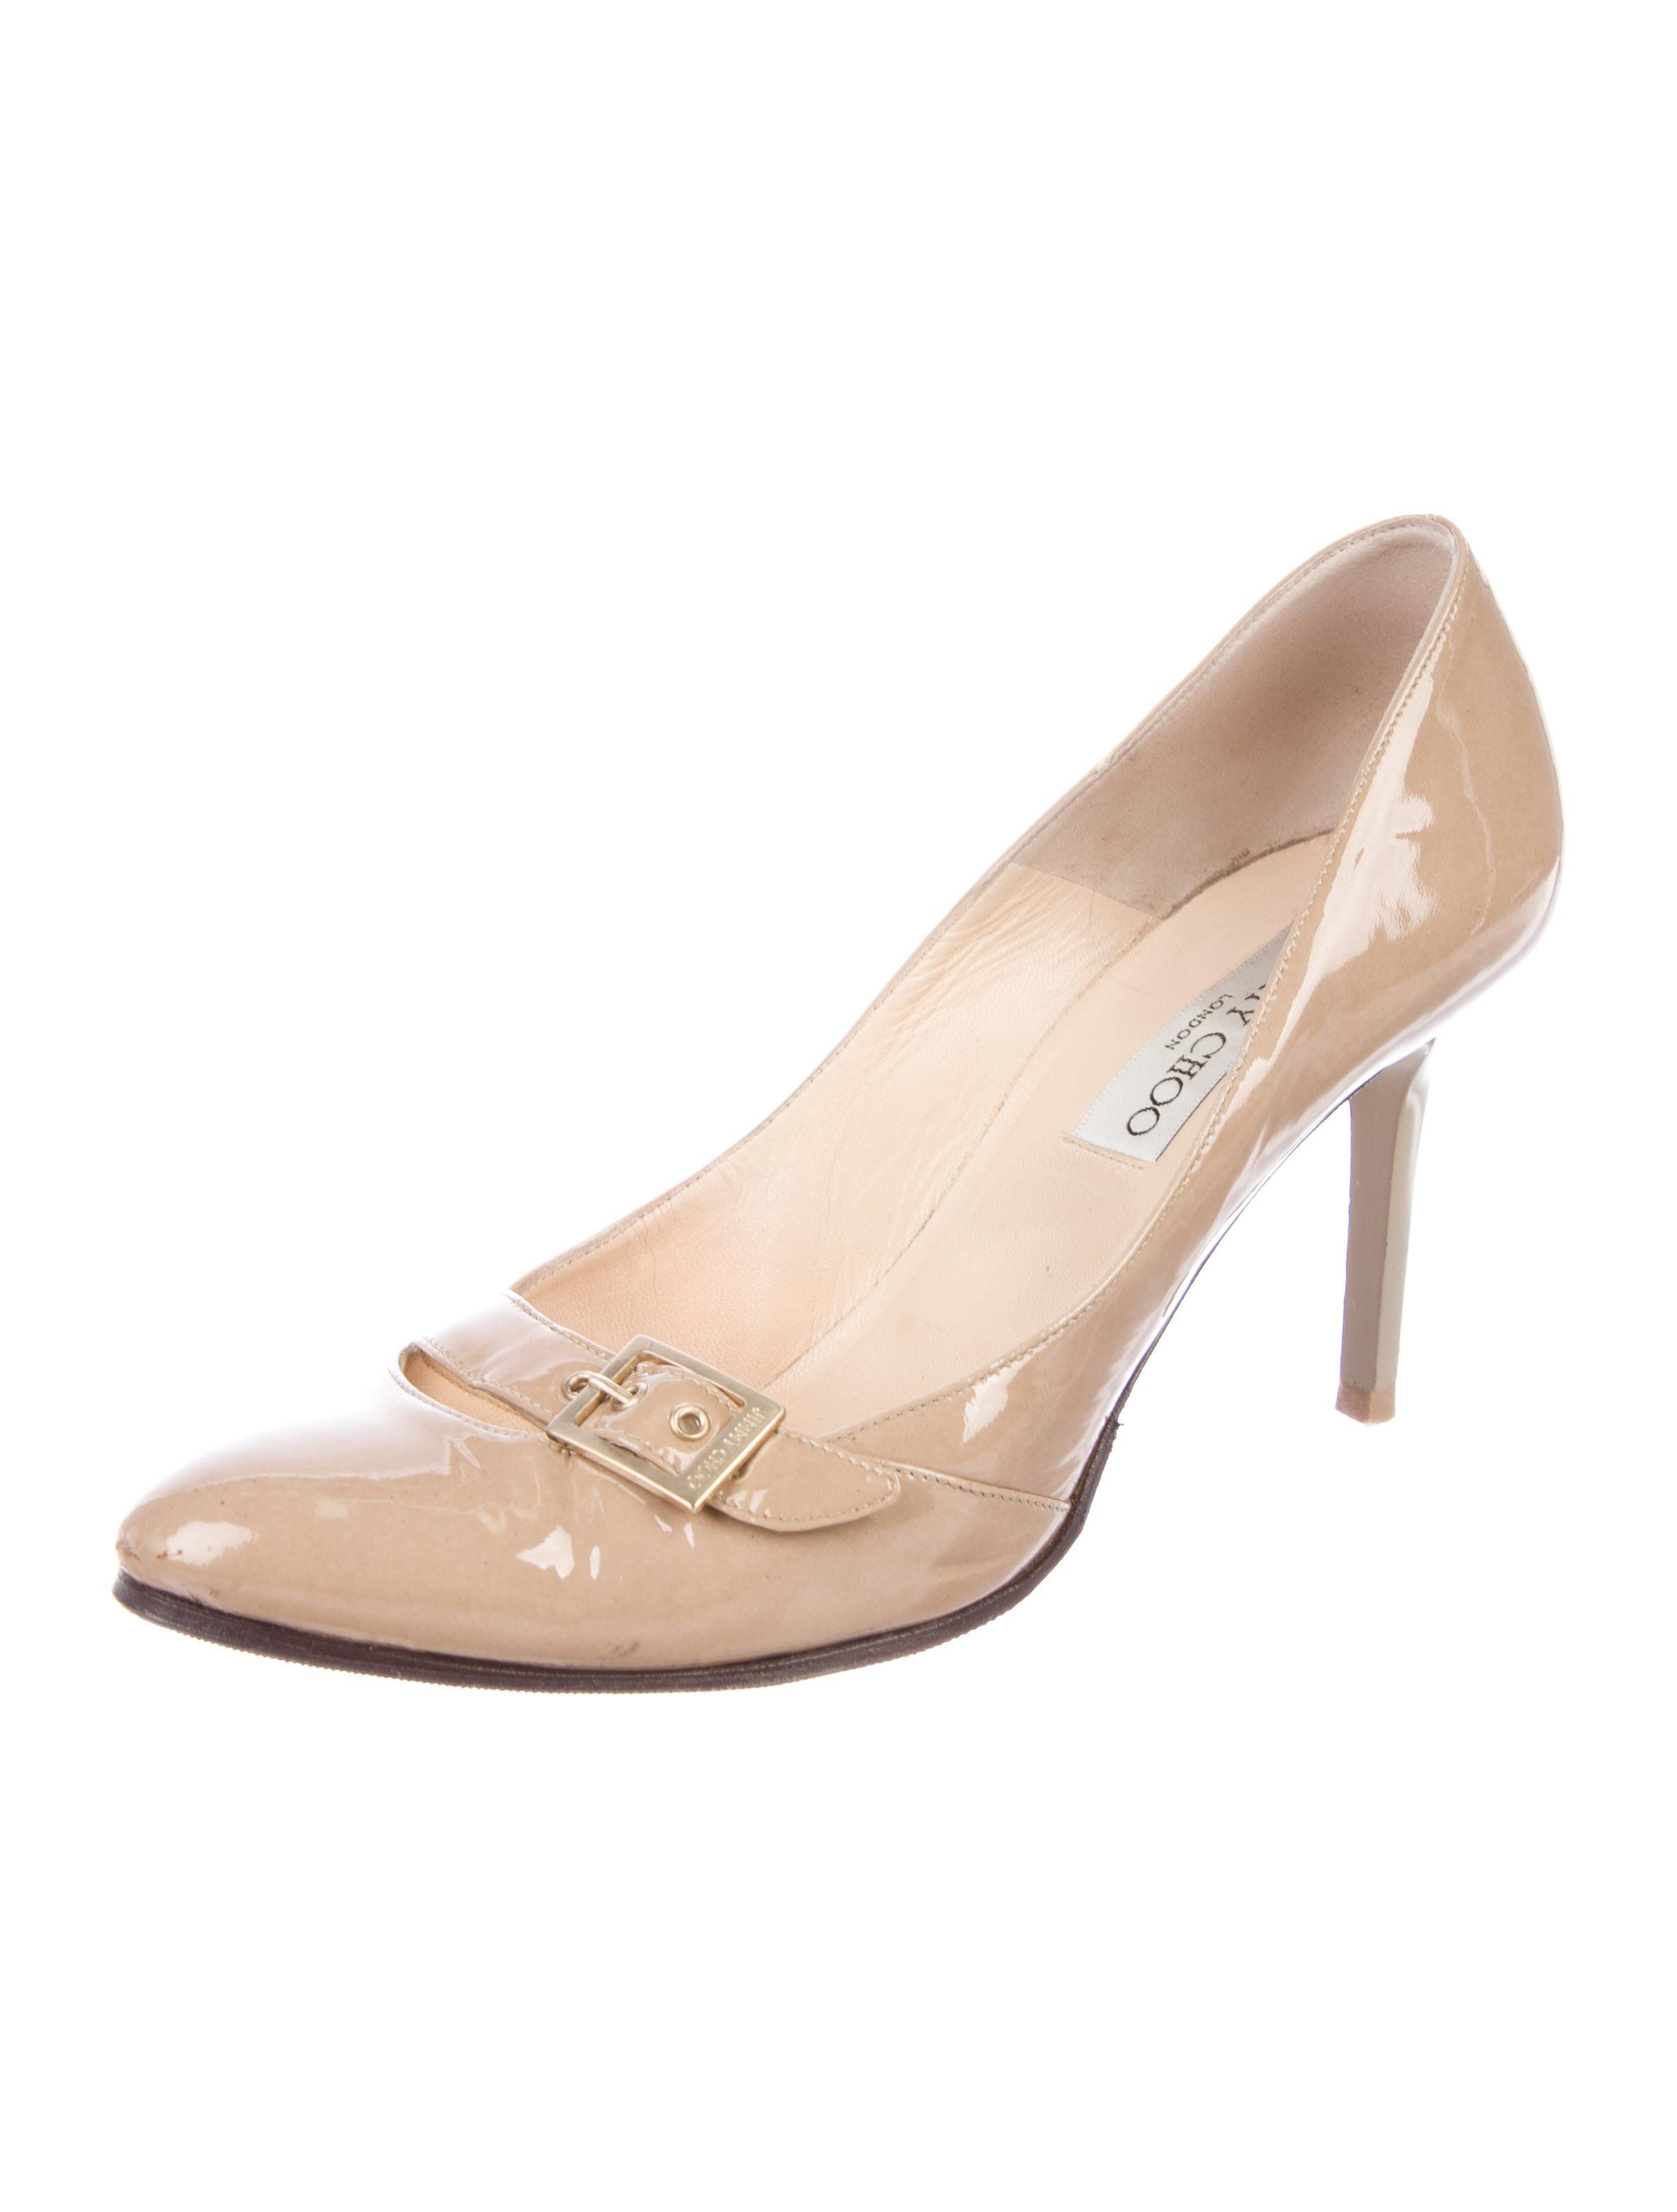 ccccbeee9a3 ... by Womens High Fashion Heels. Tan leather Jimmy Choo semi pointed-toe  pumps with gold-tone buckle accents at